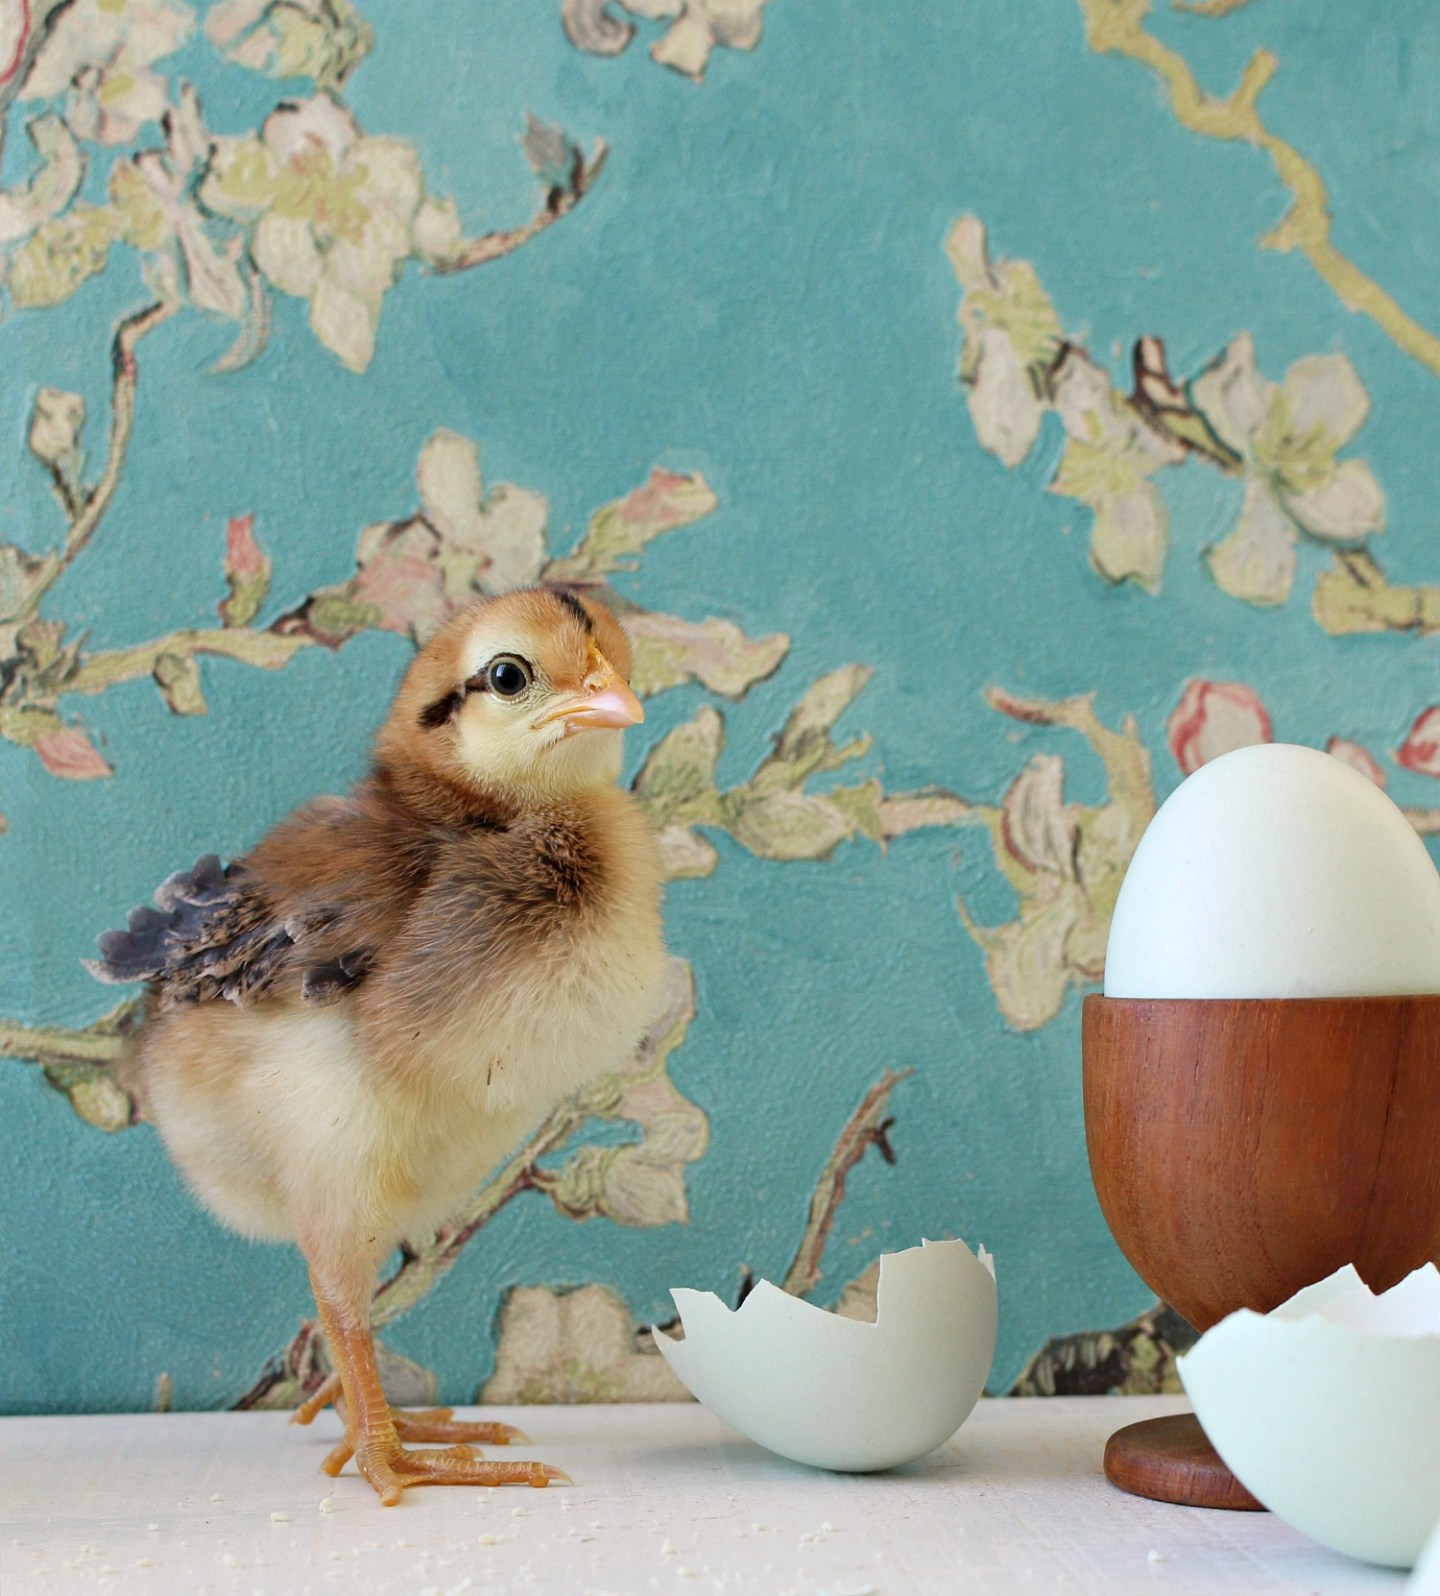 Spring Baby Chick Photos | We Got a New Batch of Chicks!